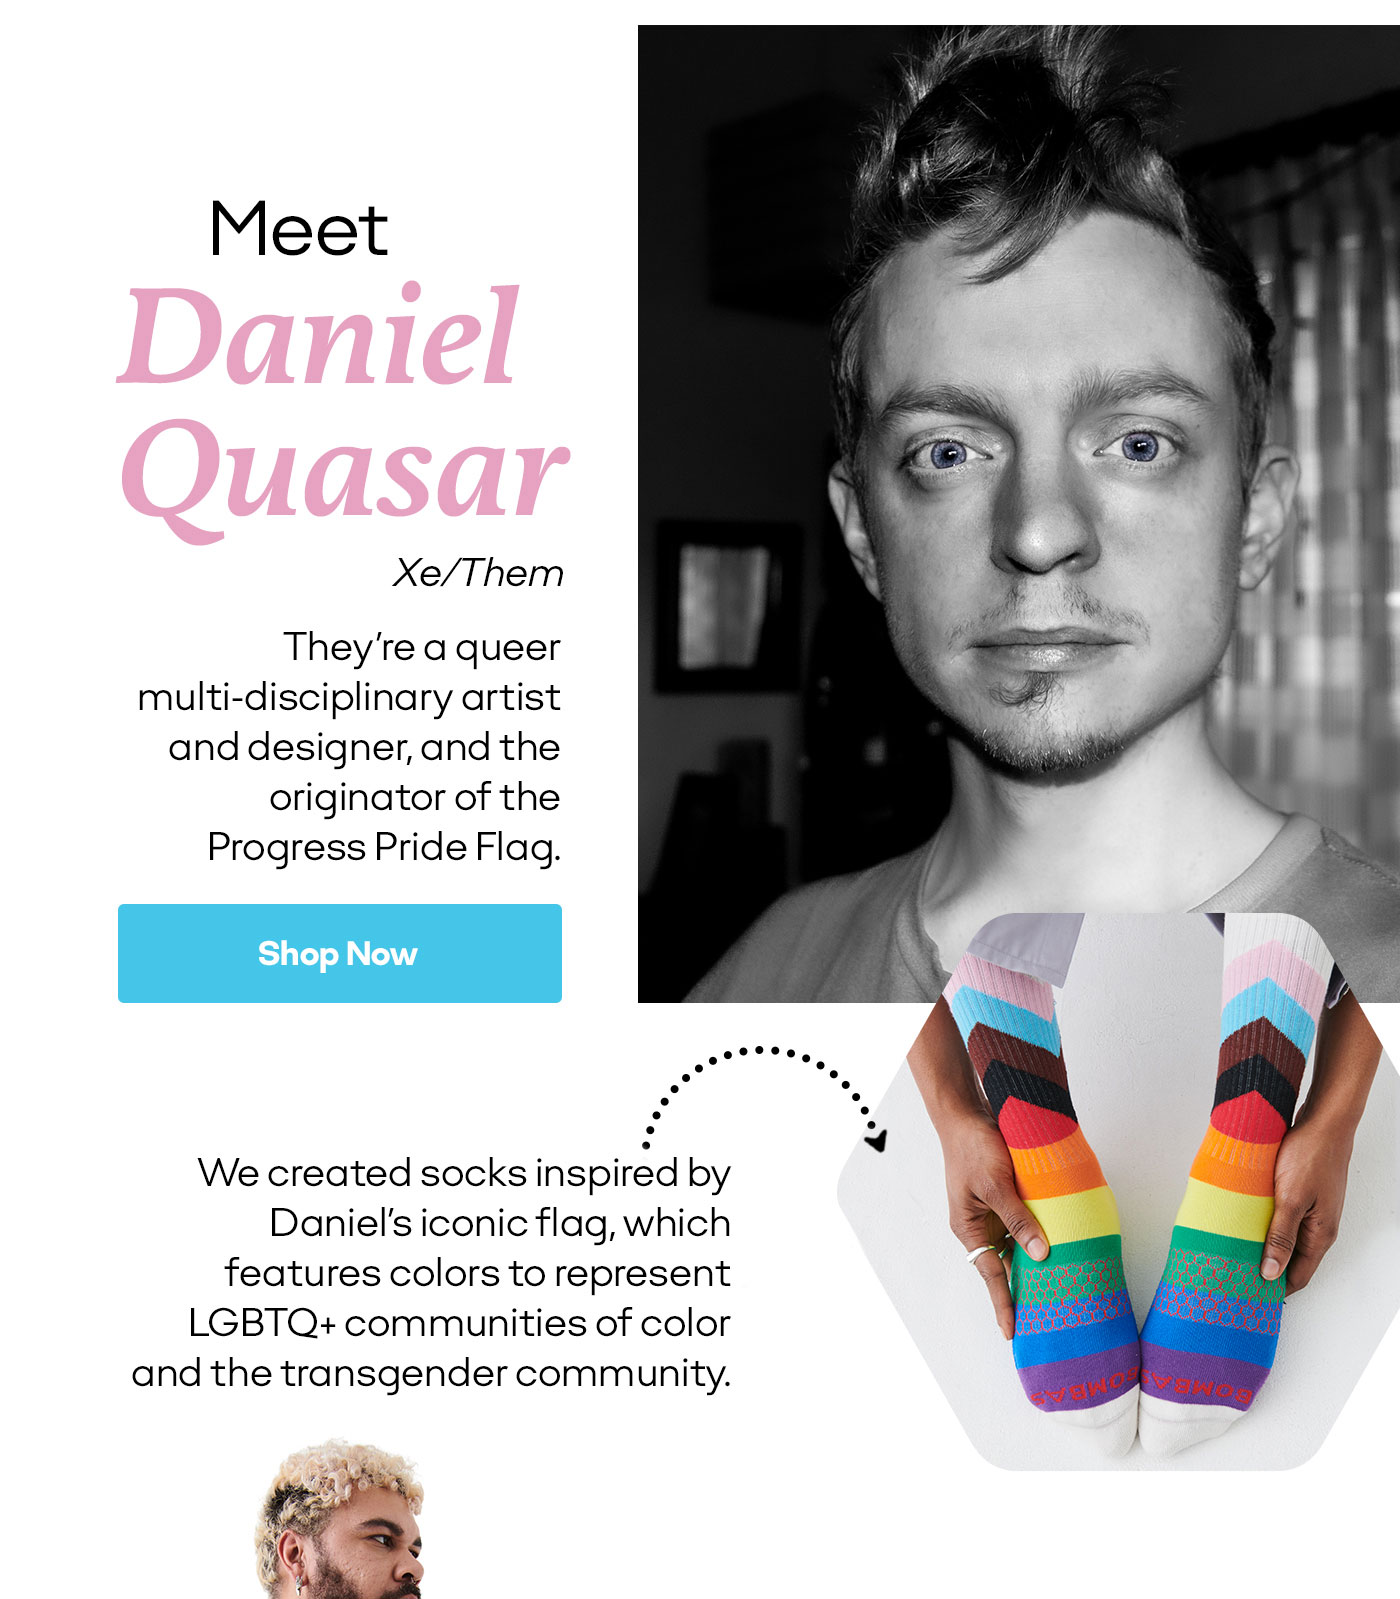 Meet Daniel Quasar | Xe/Them | They're a queer multi-disciplinary artist and designer, and the originator of the Progress Pride Flag. | Shop Now | We created socks inspired by Daniel's iconic flag, which features colors to represent LGBTQ+ communities of color and the transgender community